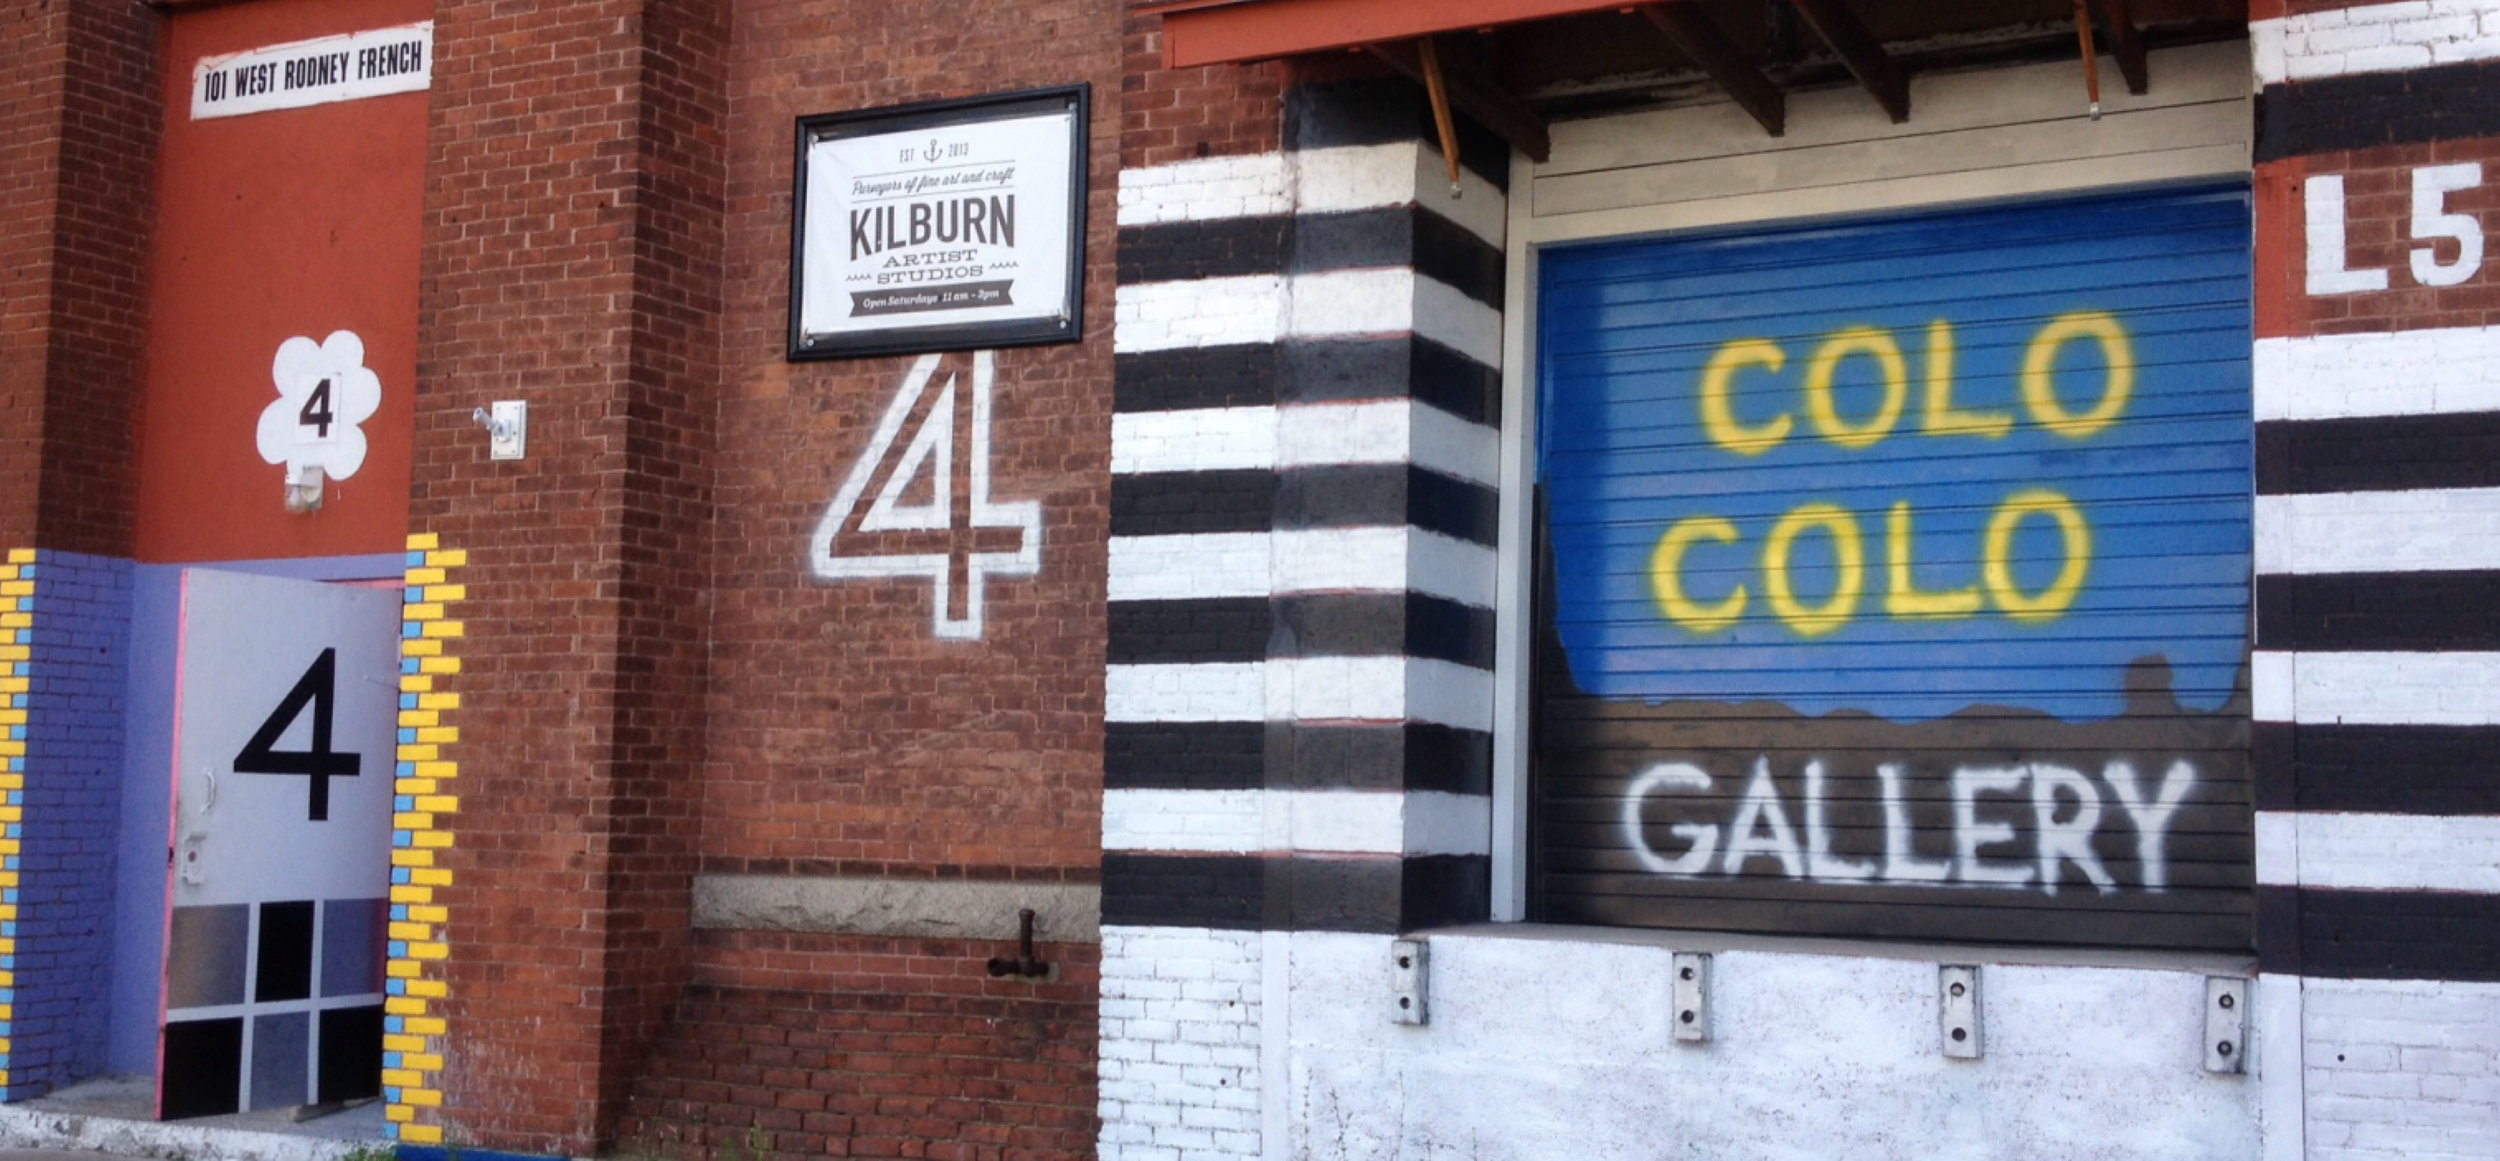 Colo Colo Gallery from Rodney French Boulevard in New Bedford, MA.